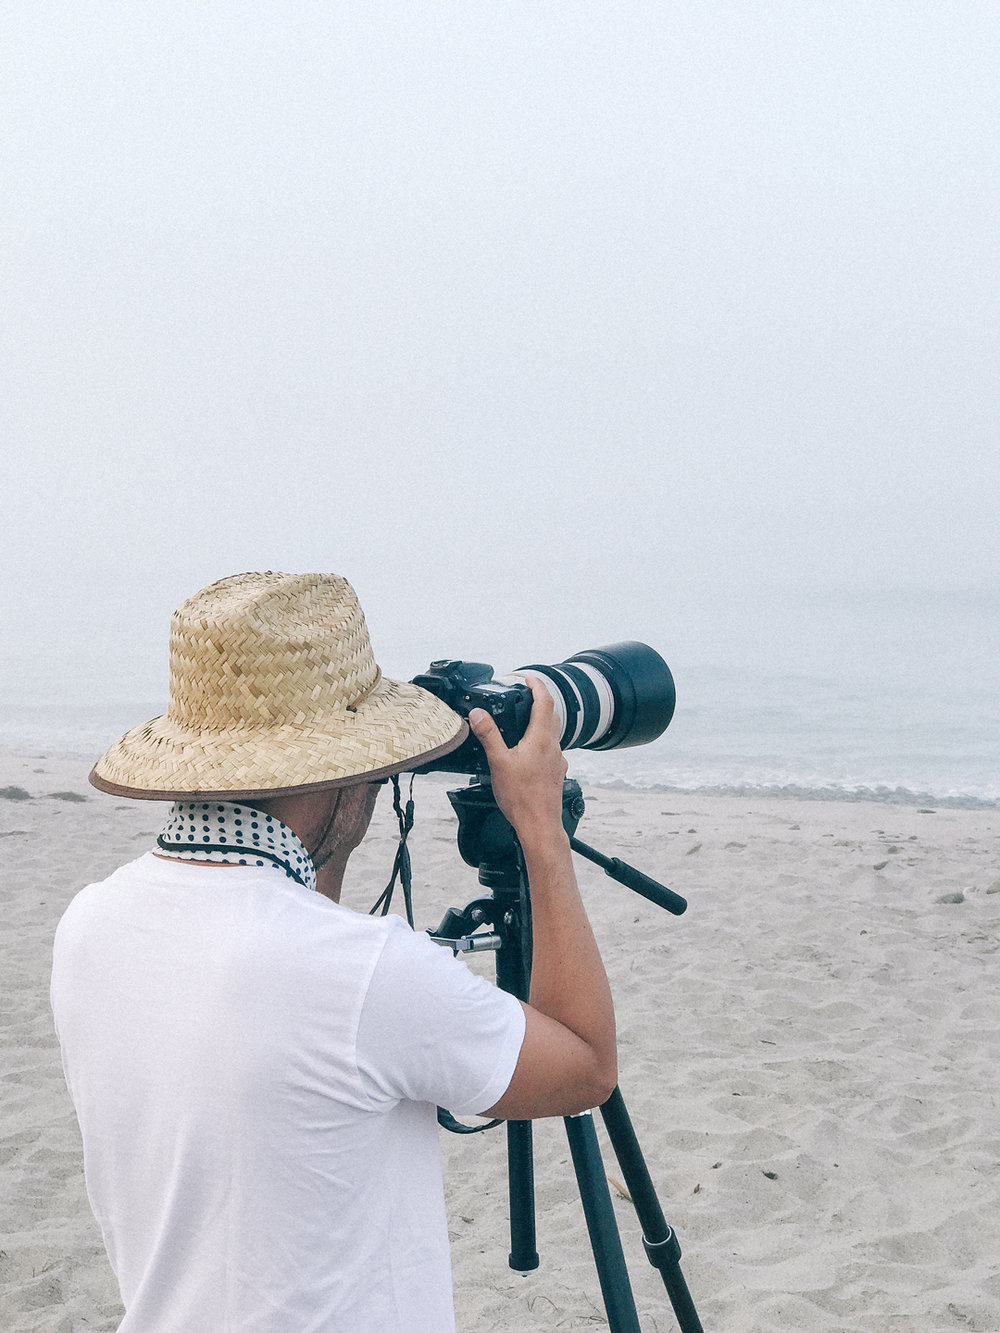 Tatsuo Takei is a freelance photographer from Osaka, Japan. Specialized in surf photography and cinematography since 1997.Tatsuo has been active shooting analog film in Japan and the United States. - WATCH FULL MOVIE >>>